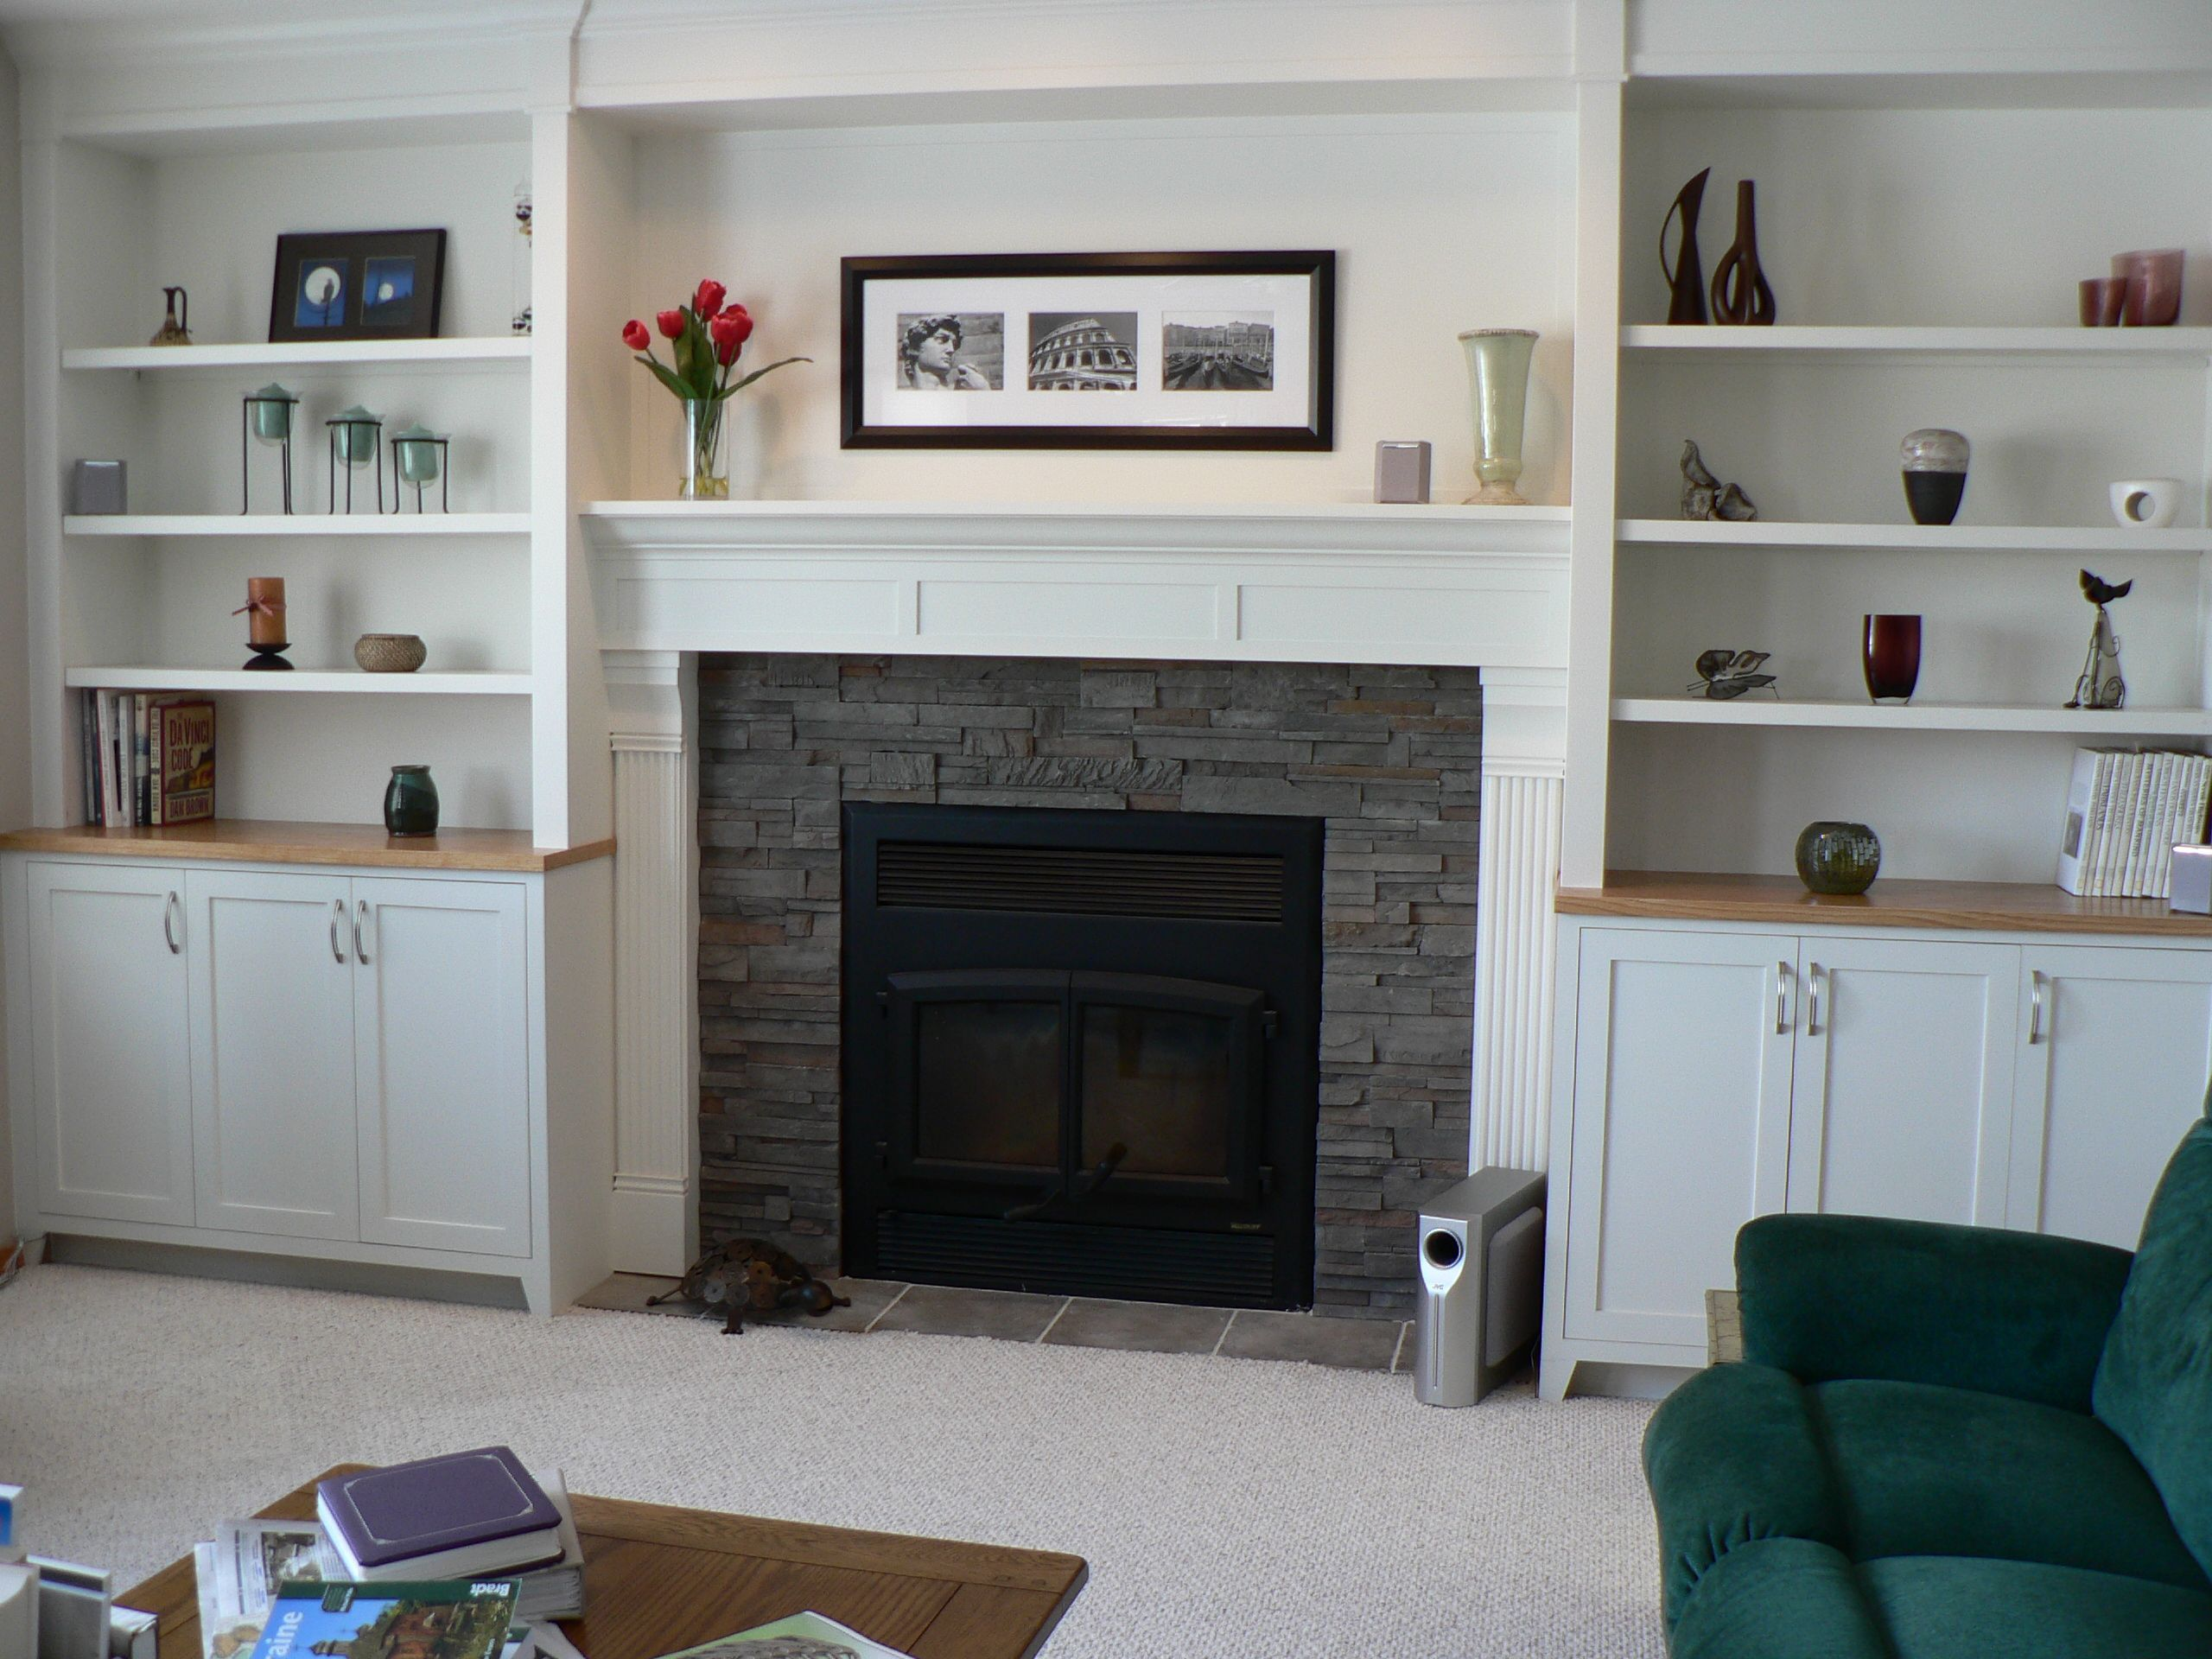 47 Dorable Minimalist Fireplace Fireplace Bookcase Fireplace